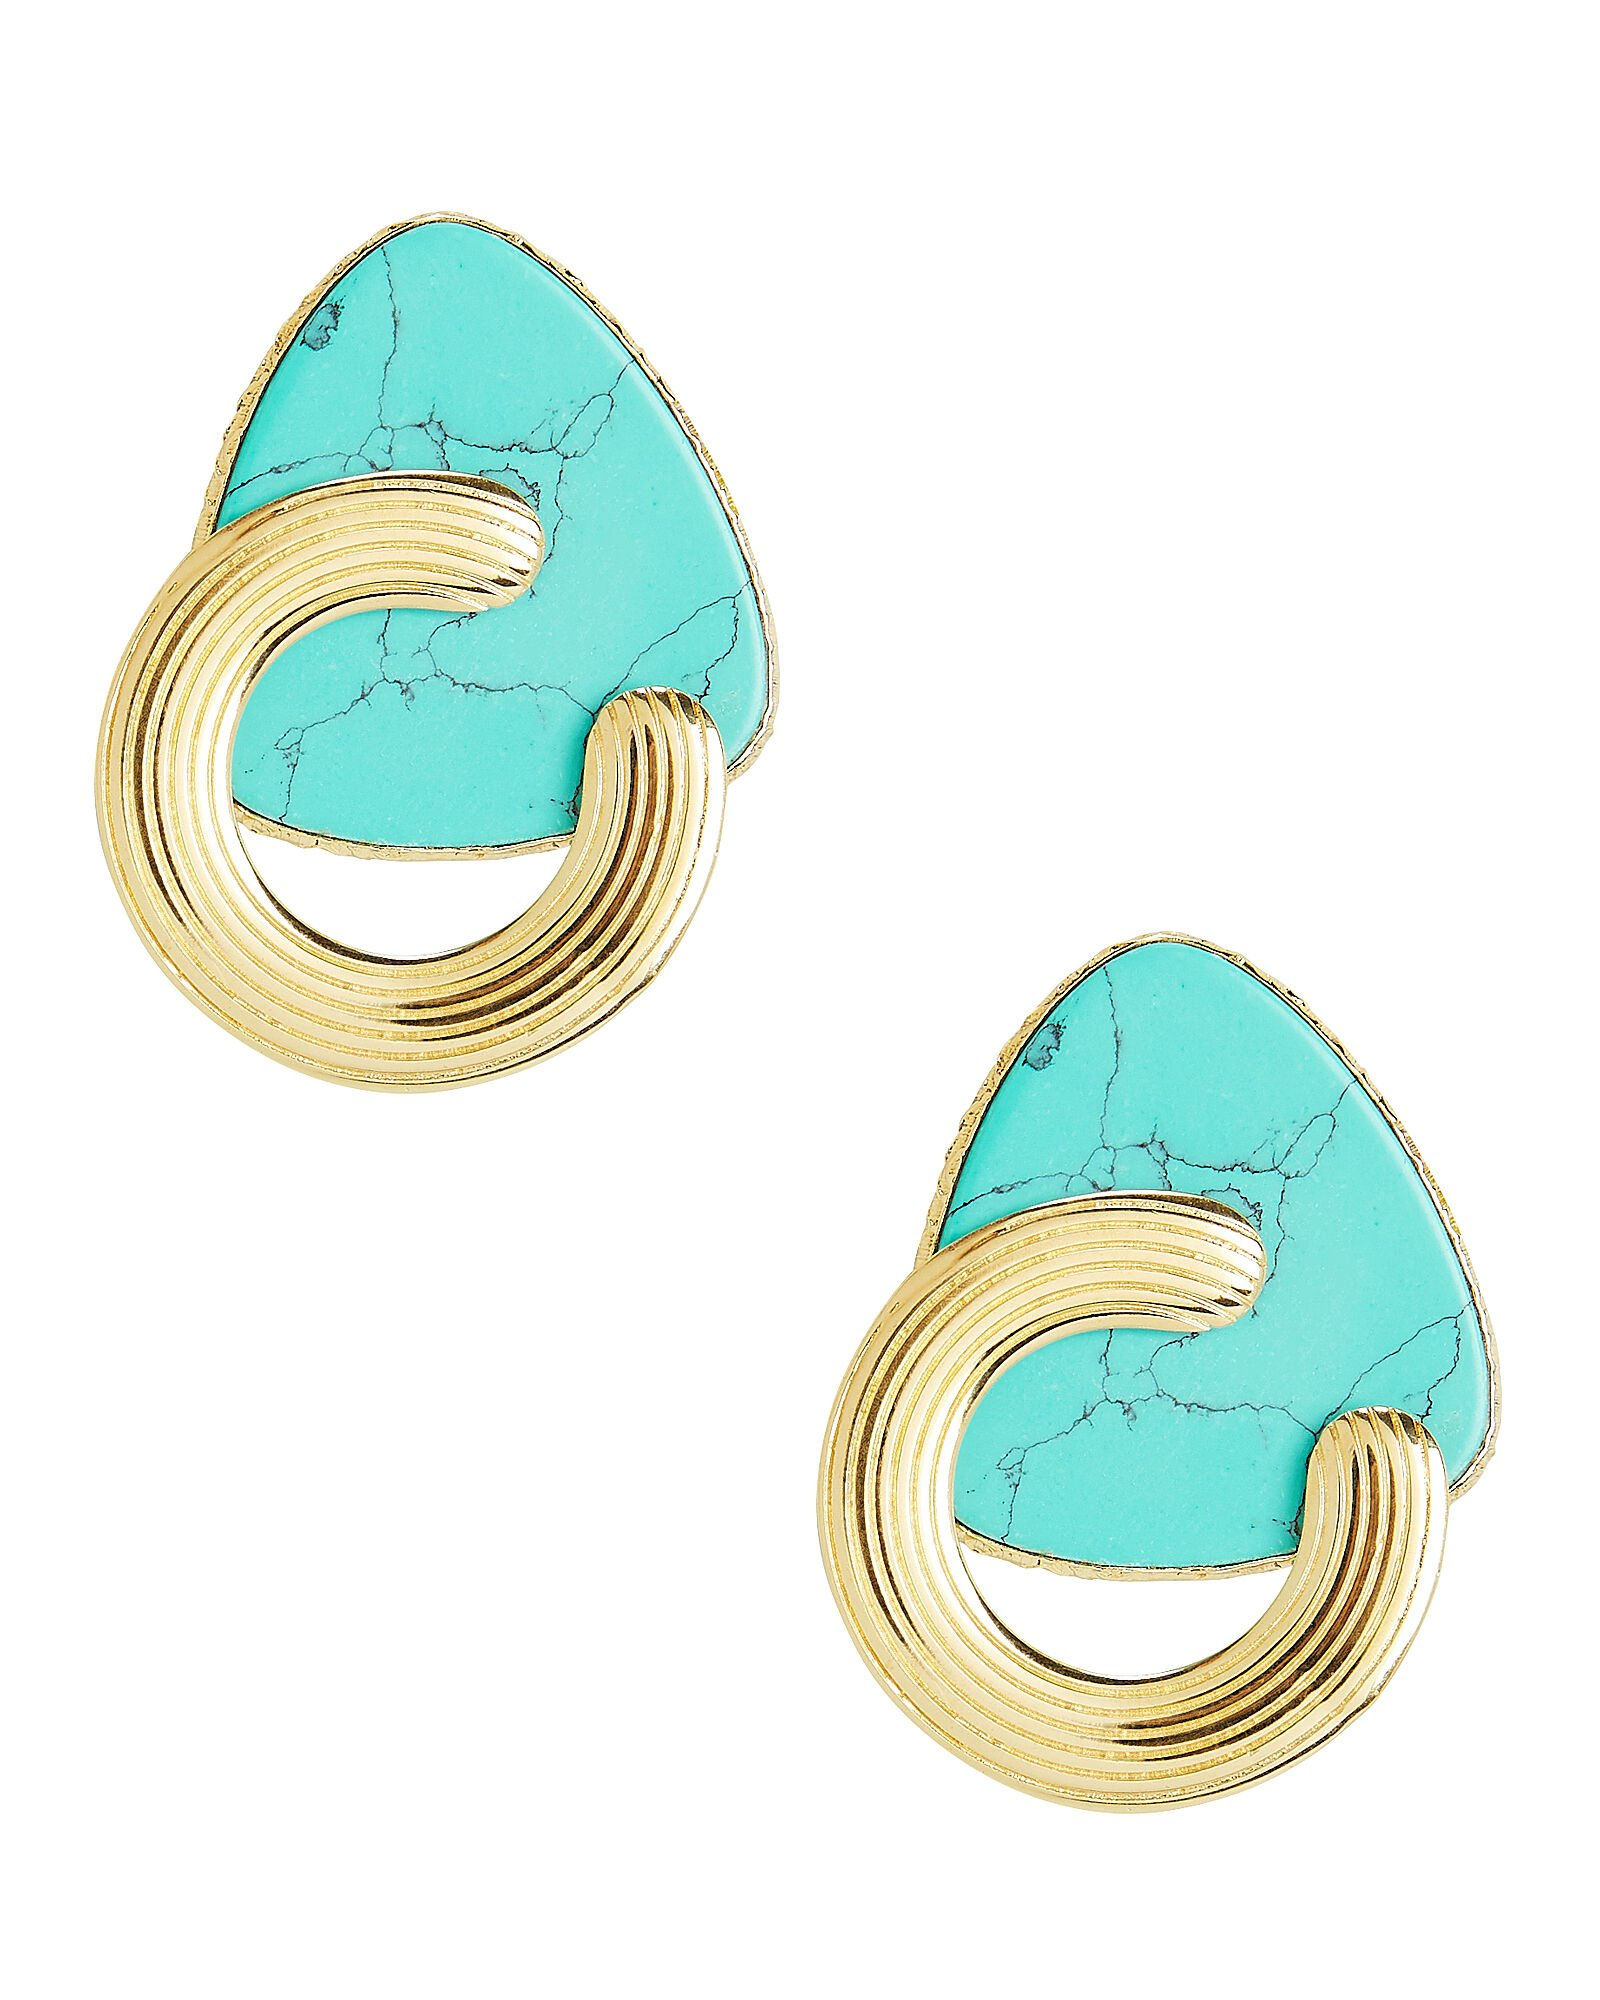 Bo Anemone Turquoise Earrings, GOLD/TURQUOISE, hi-res